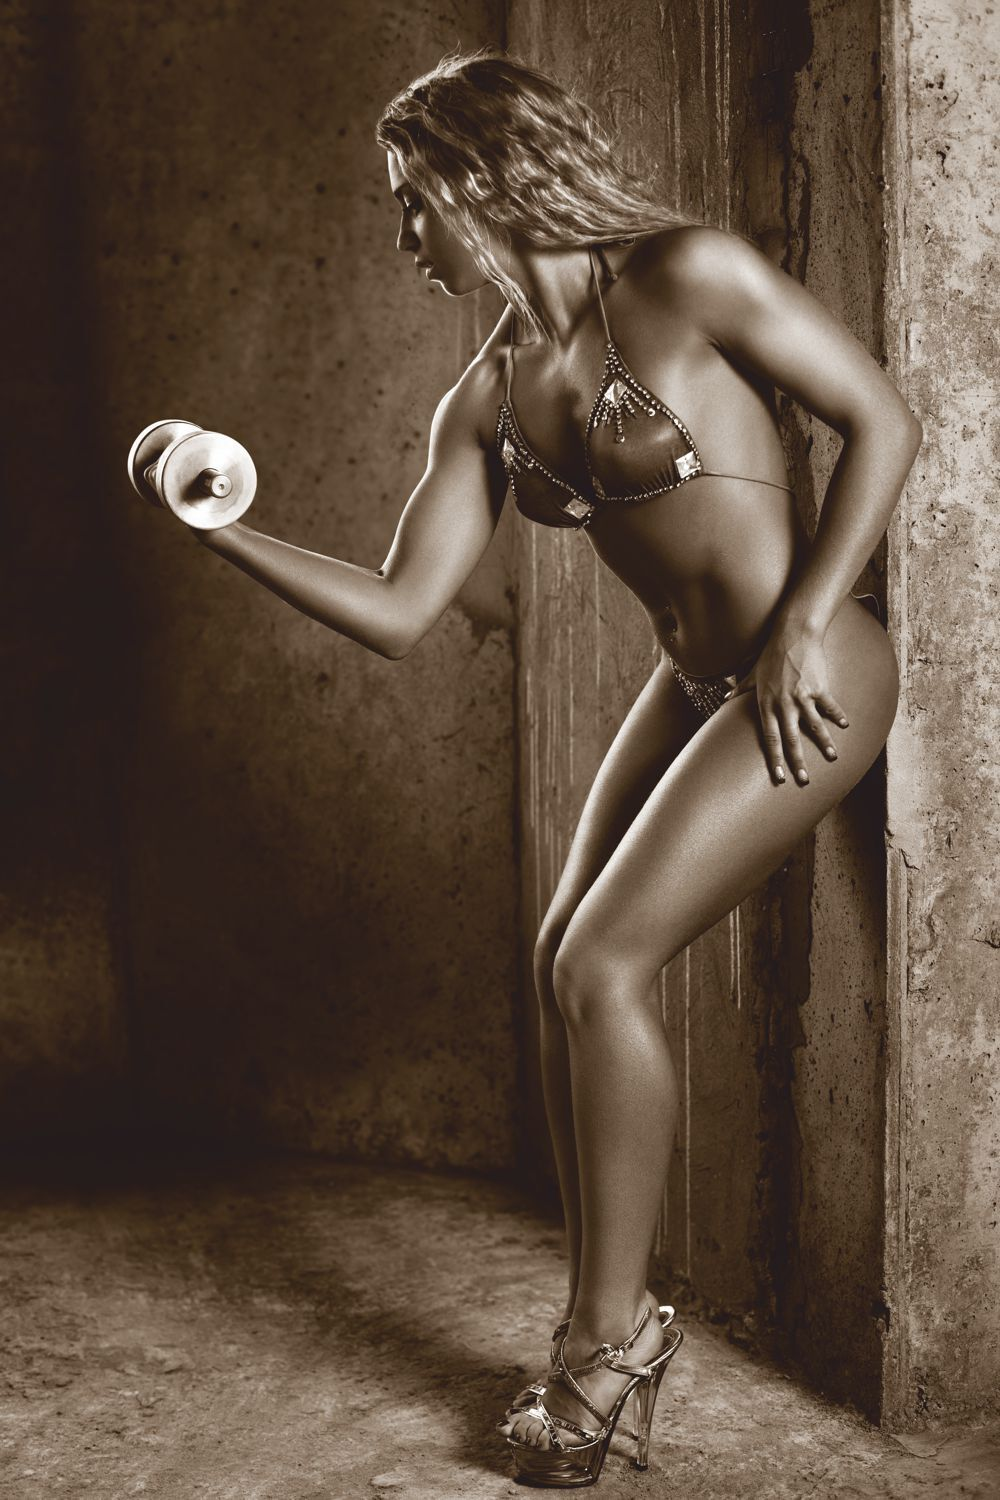 Poster Fototapete selbstklebend Fitness sexy Lady Curls sepia